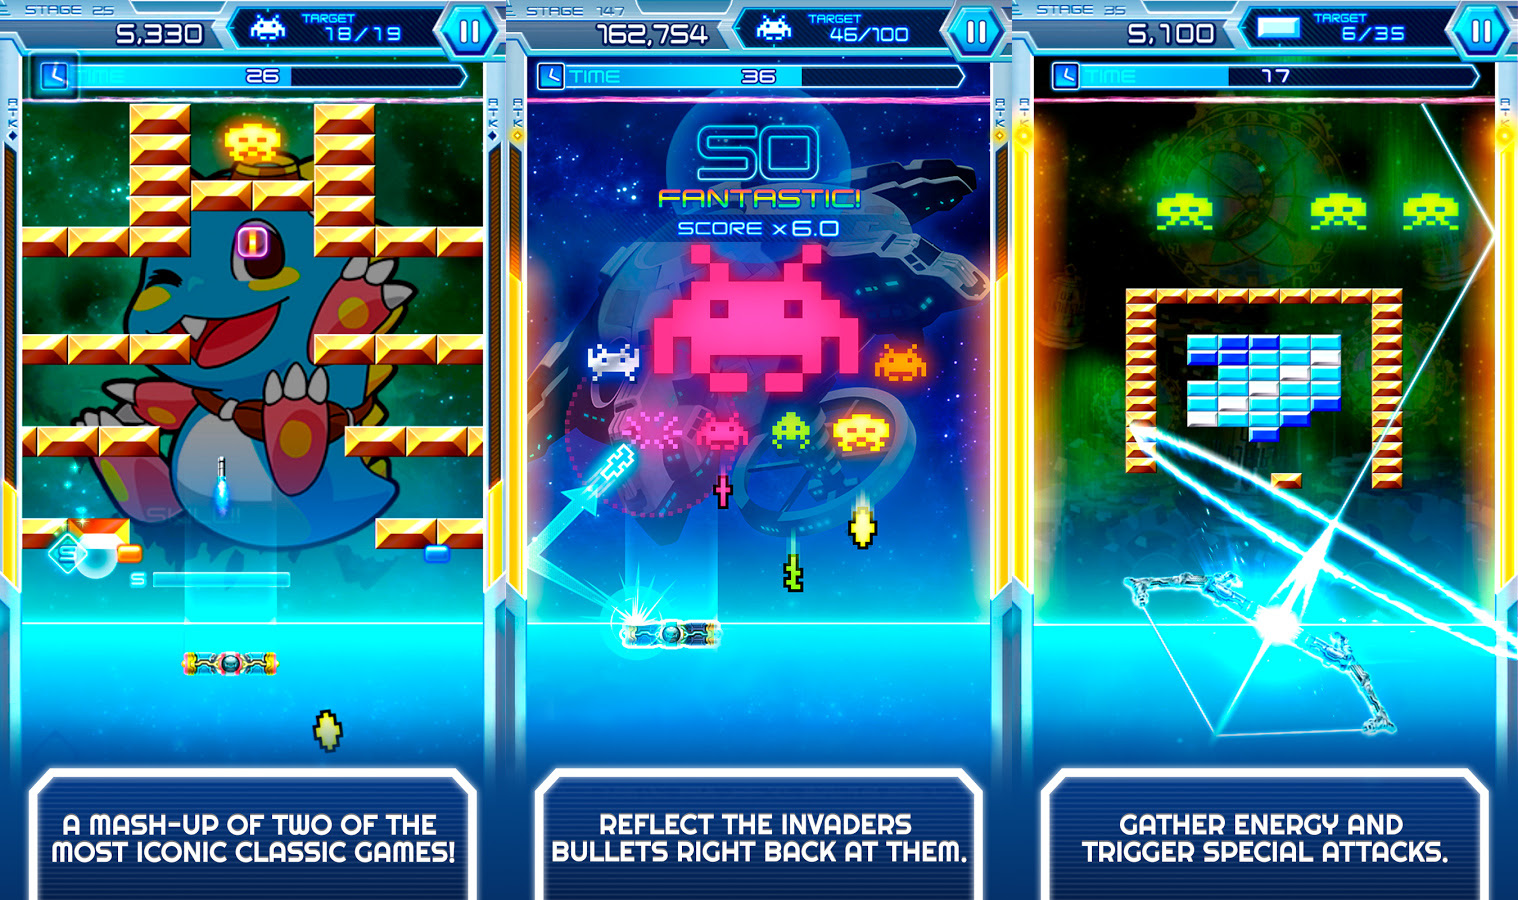 Arkanoid vs. Space Invaders is a thing of beauty screenshot